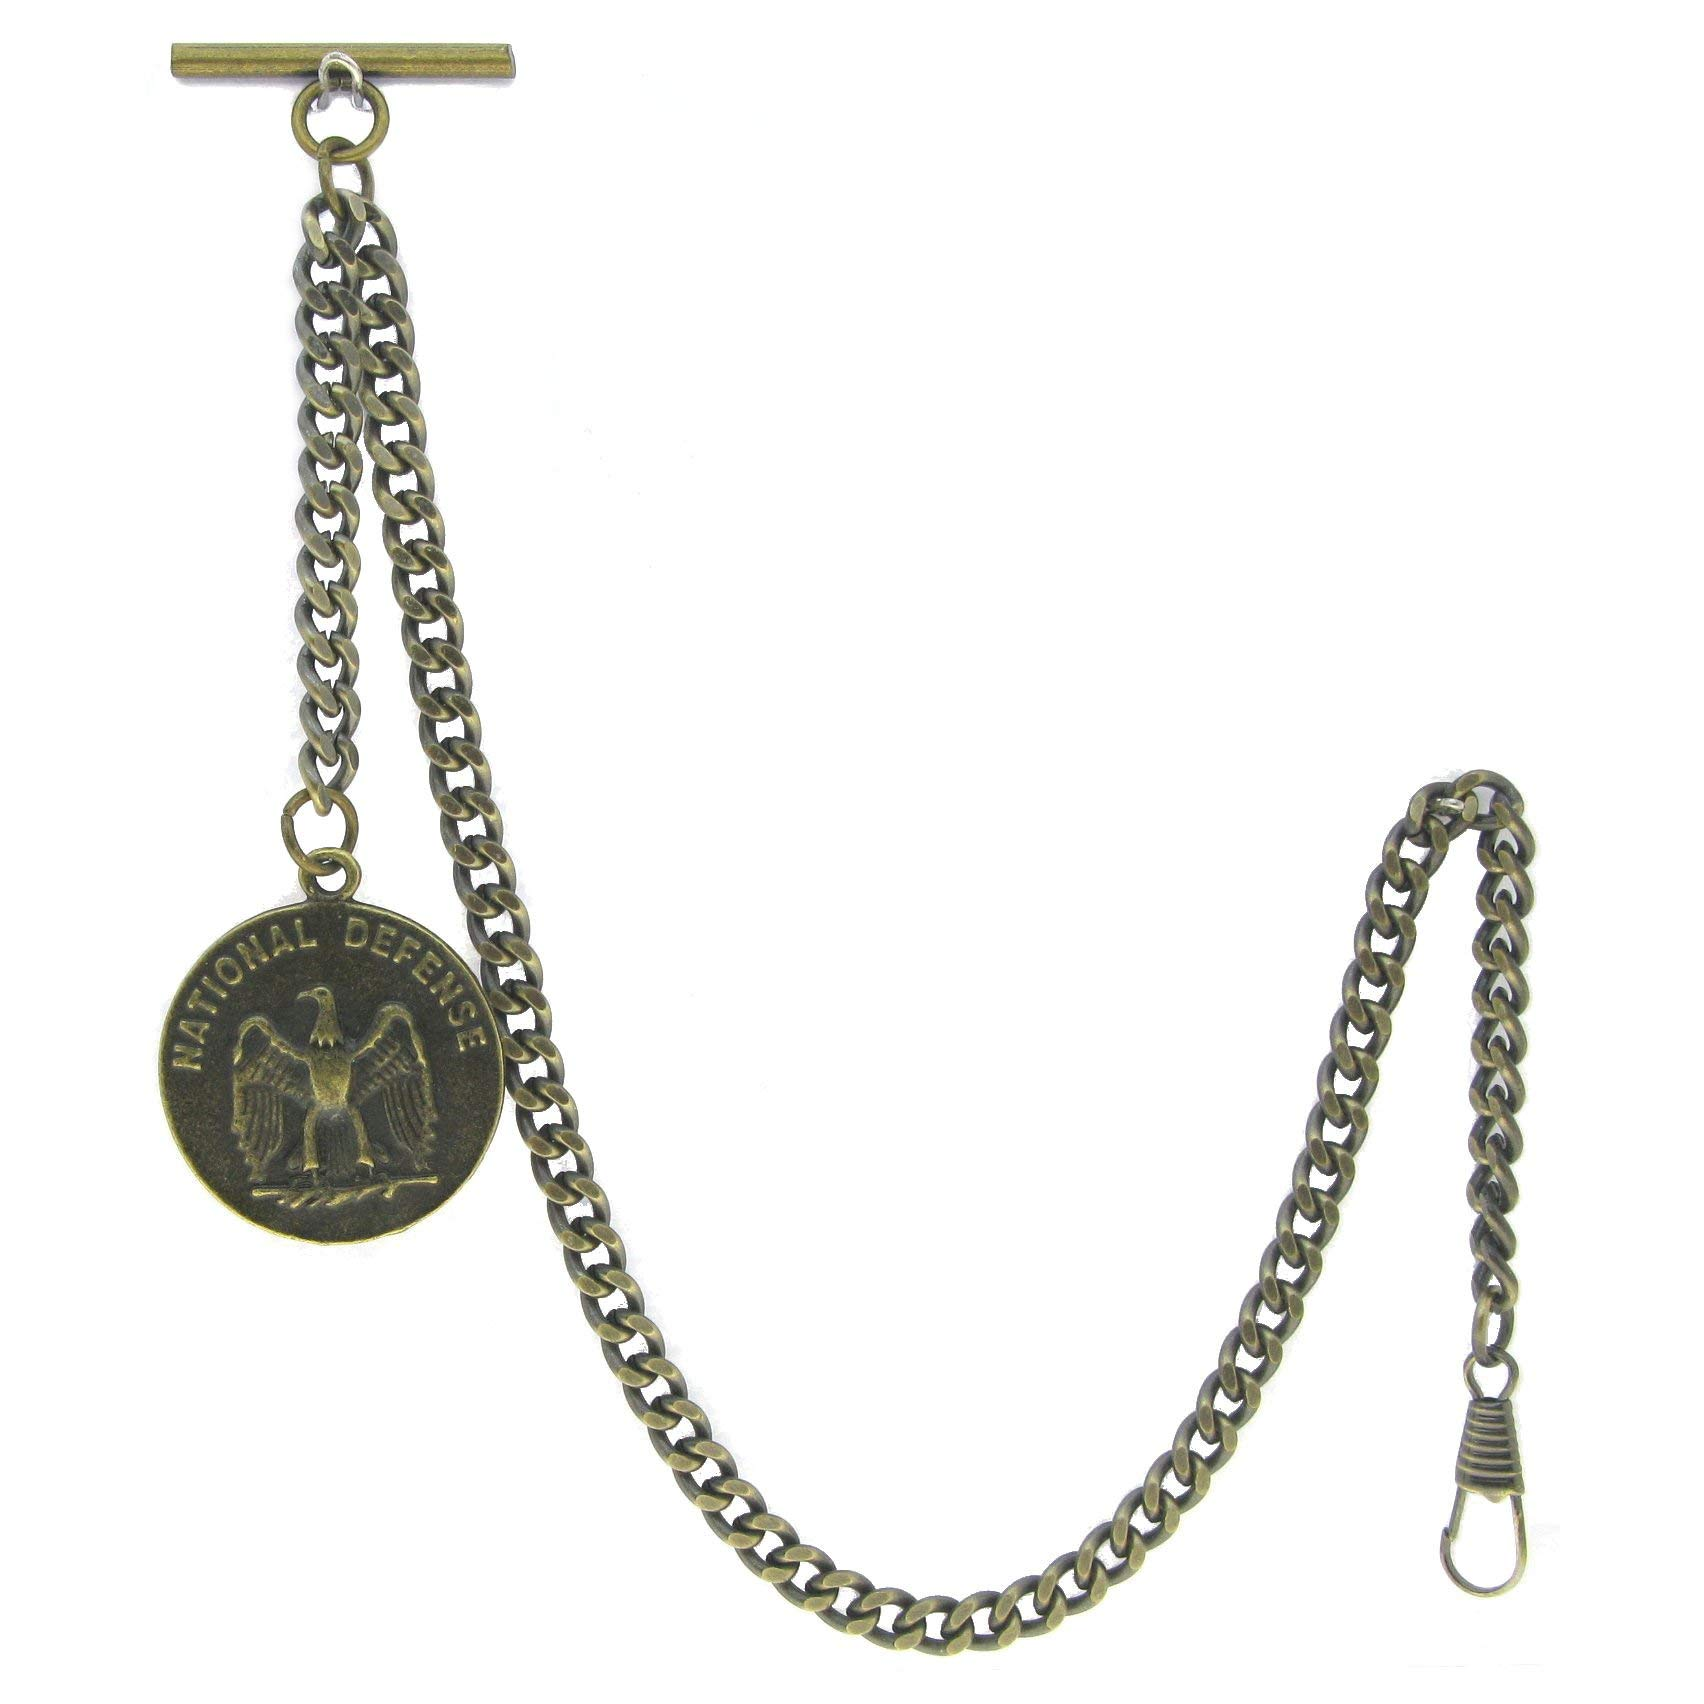 Albert Chain Pocket Watch Curb Link Chain Antique Brass Color US National Defense Medal Fob T Bar AC95